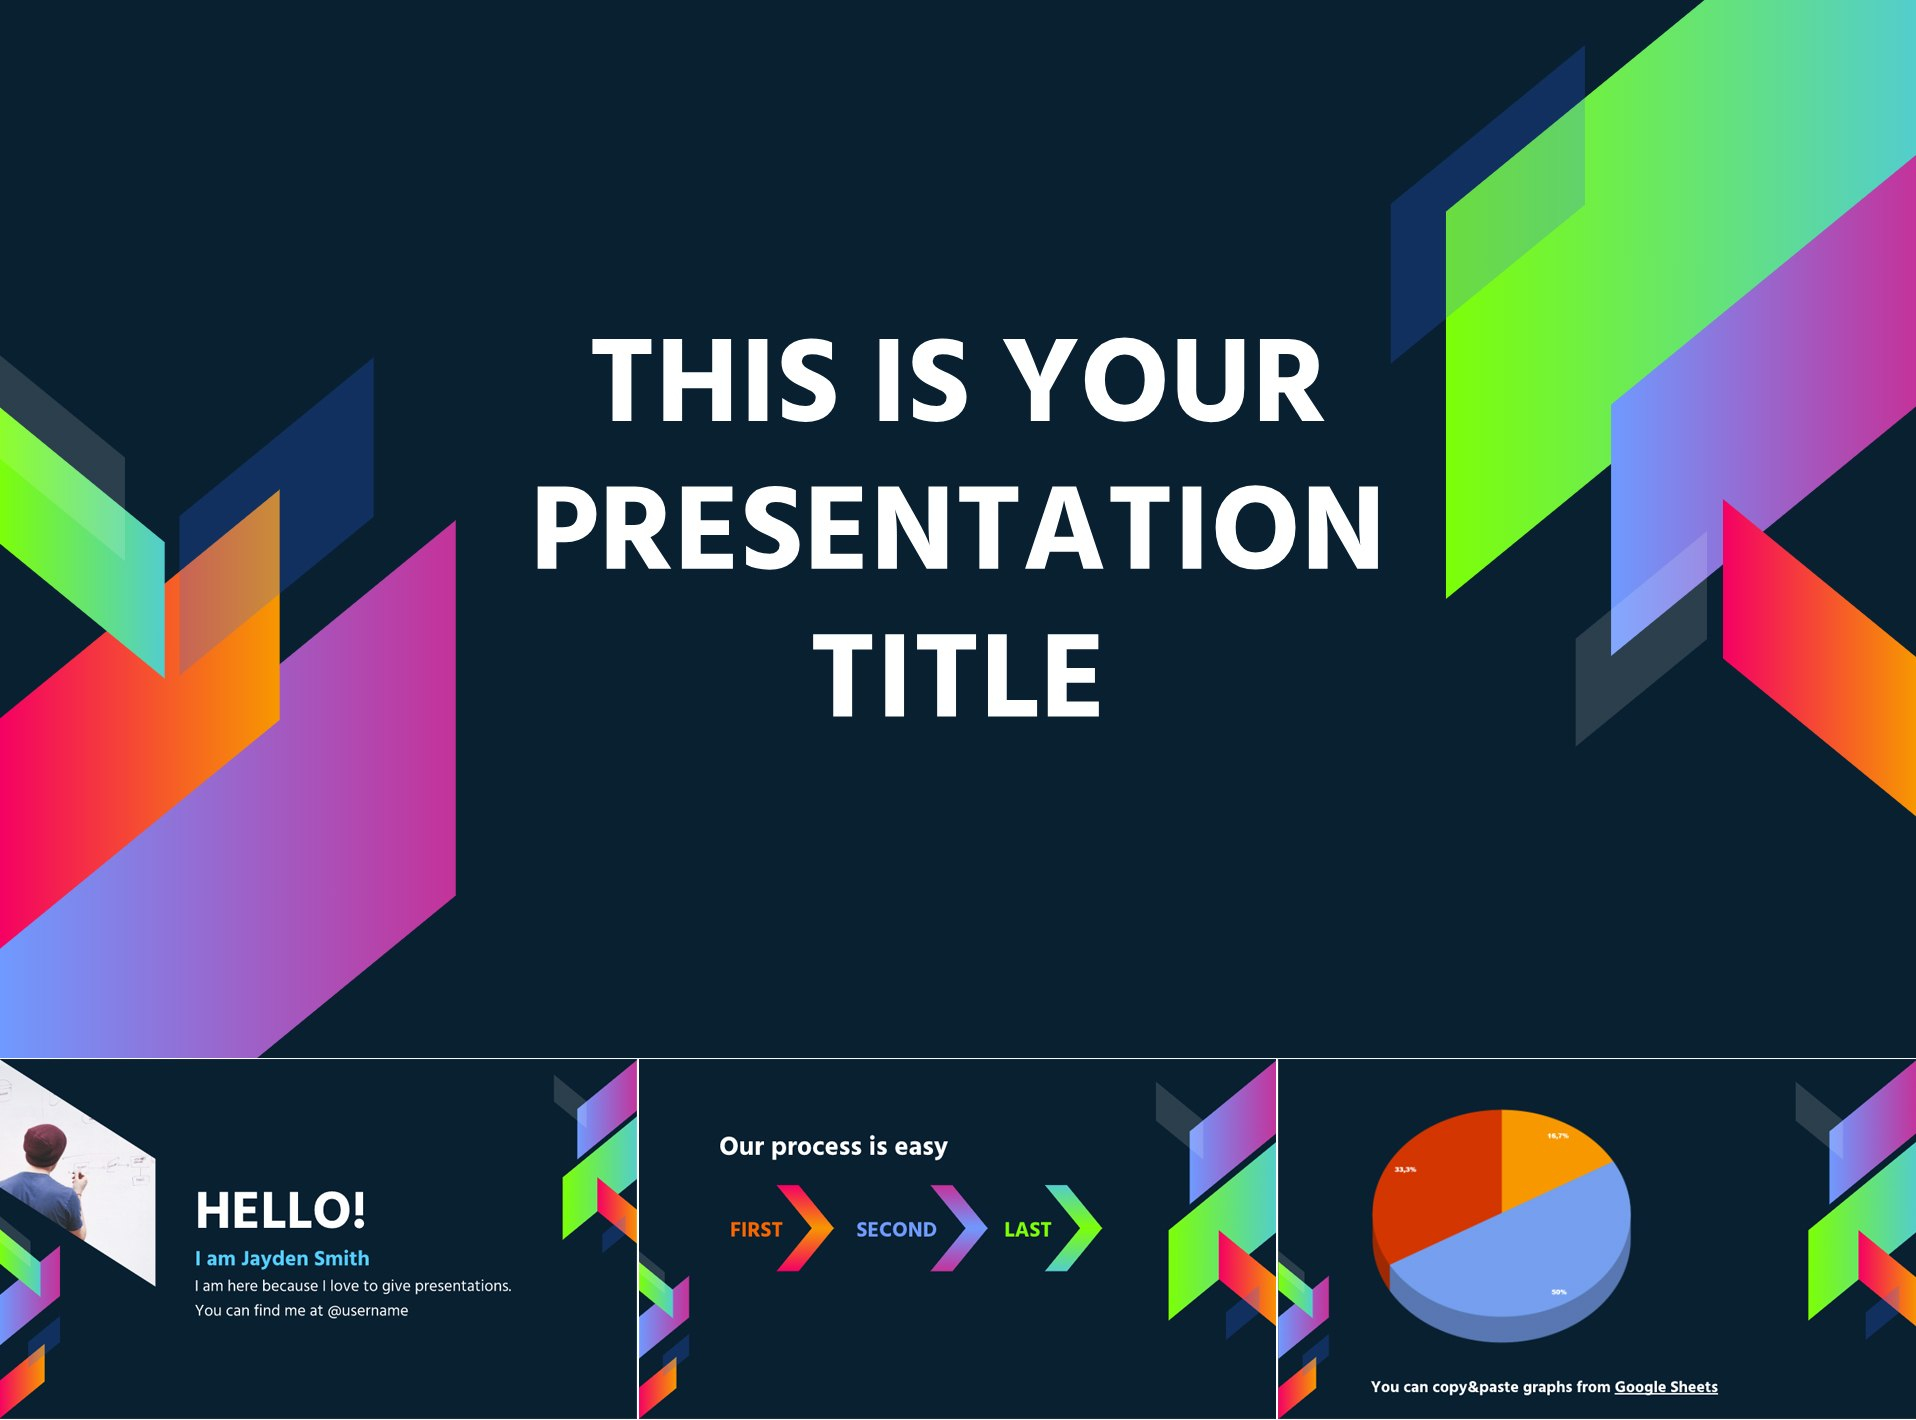 Free Google Slides Templates For Your Next Presentation Inside Google Drive Presentation Templates